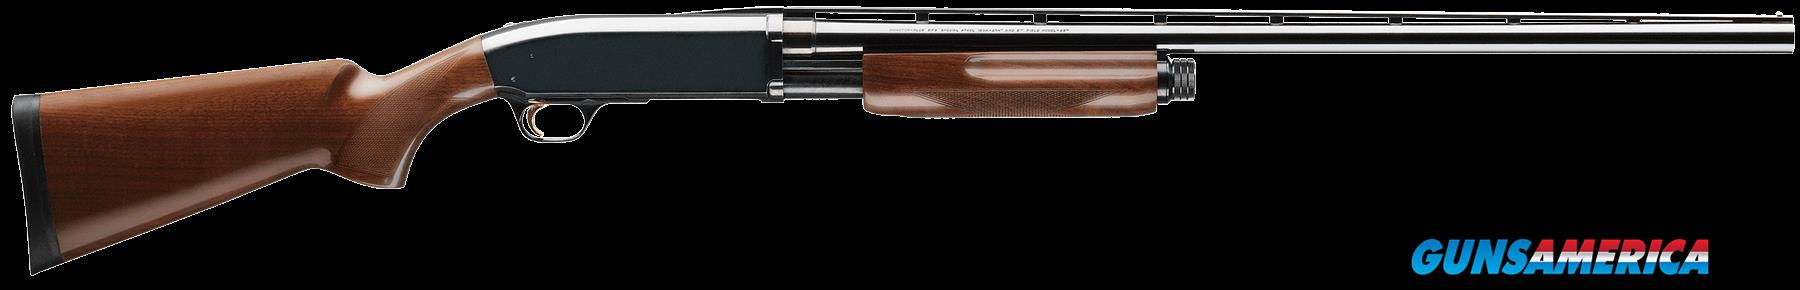 "Browning 012211304 BPS Pump 12 Gauge 28"" 3"" Walnut Stk Blued High Polish Rcvr  Guns > Shotguns > B Misc Shotguns"